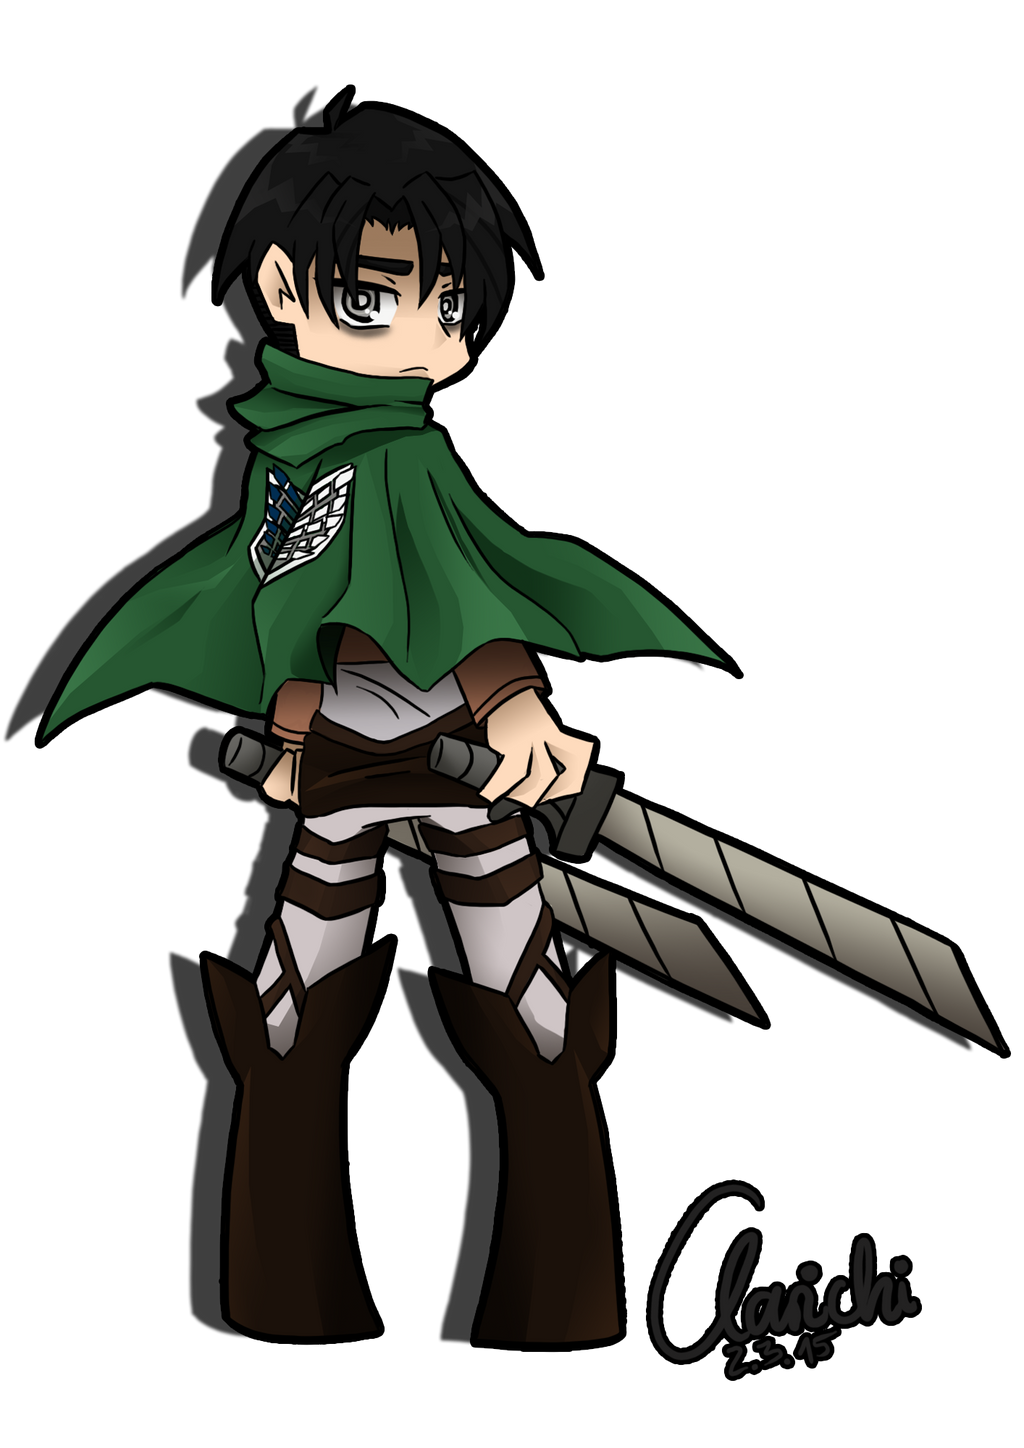 Levi Ackerman PSG Style by Clarichi on DeviantArt